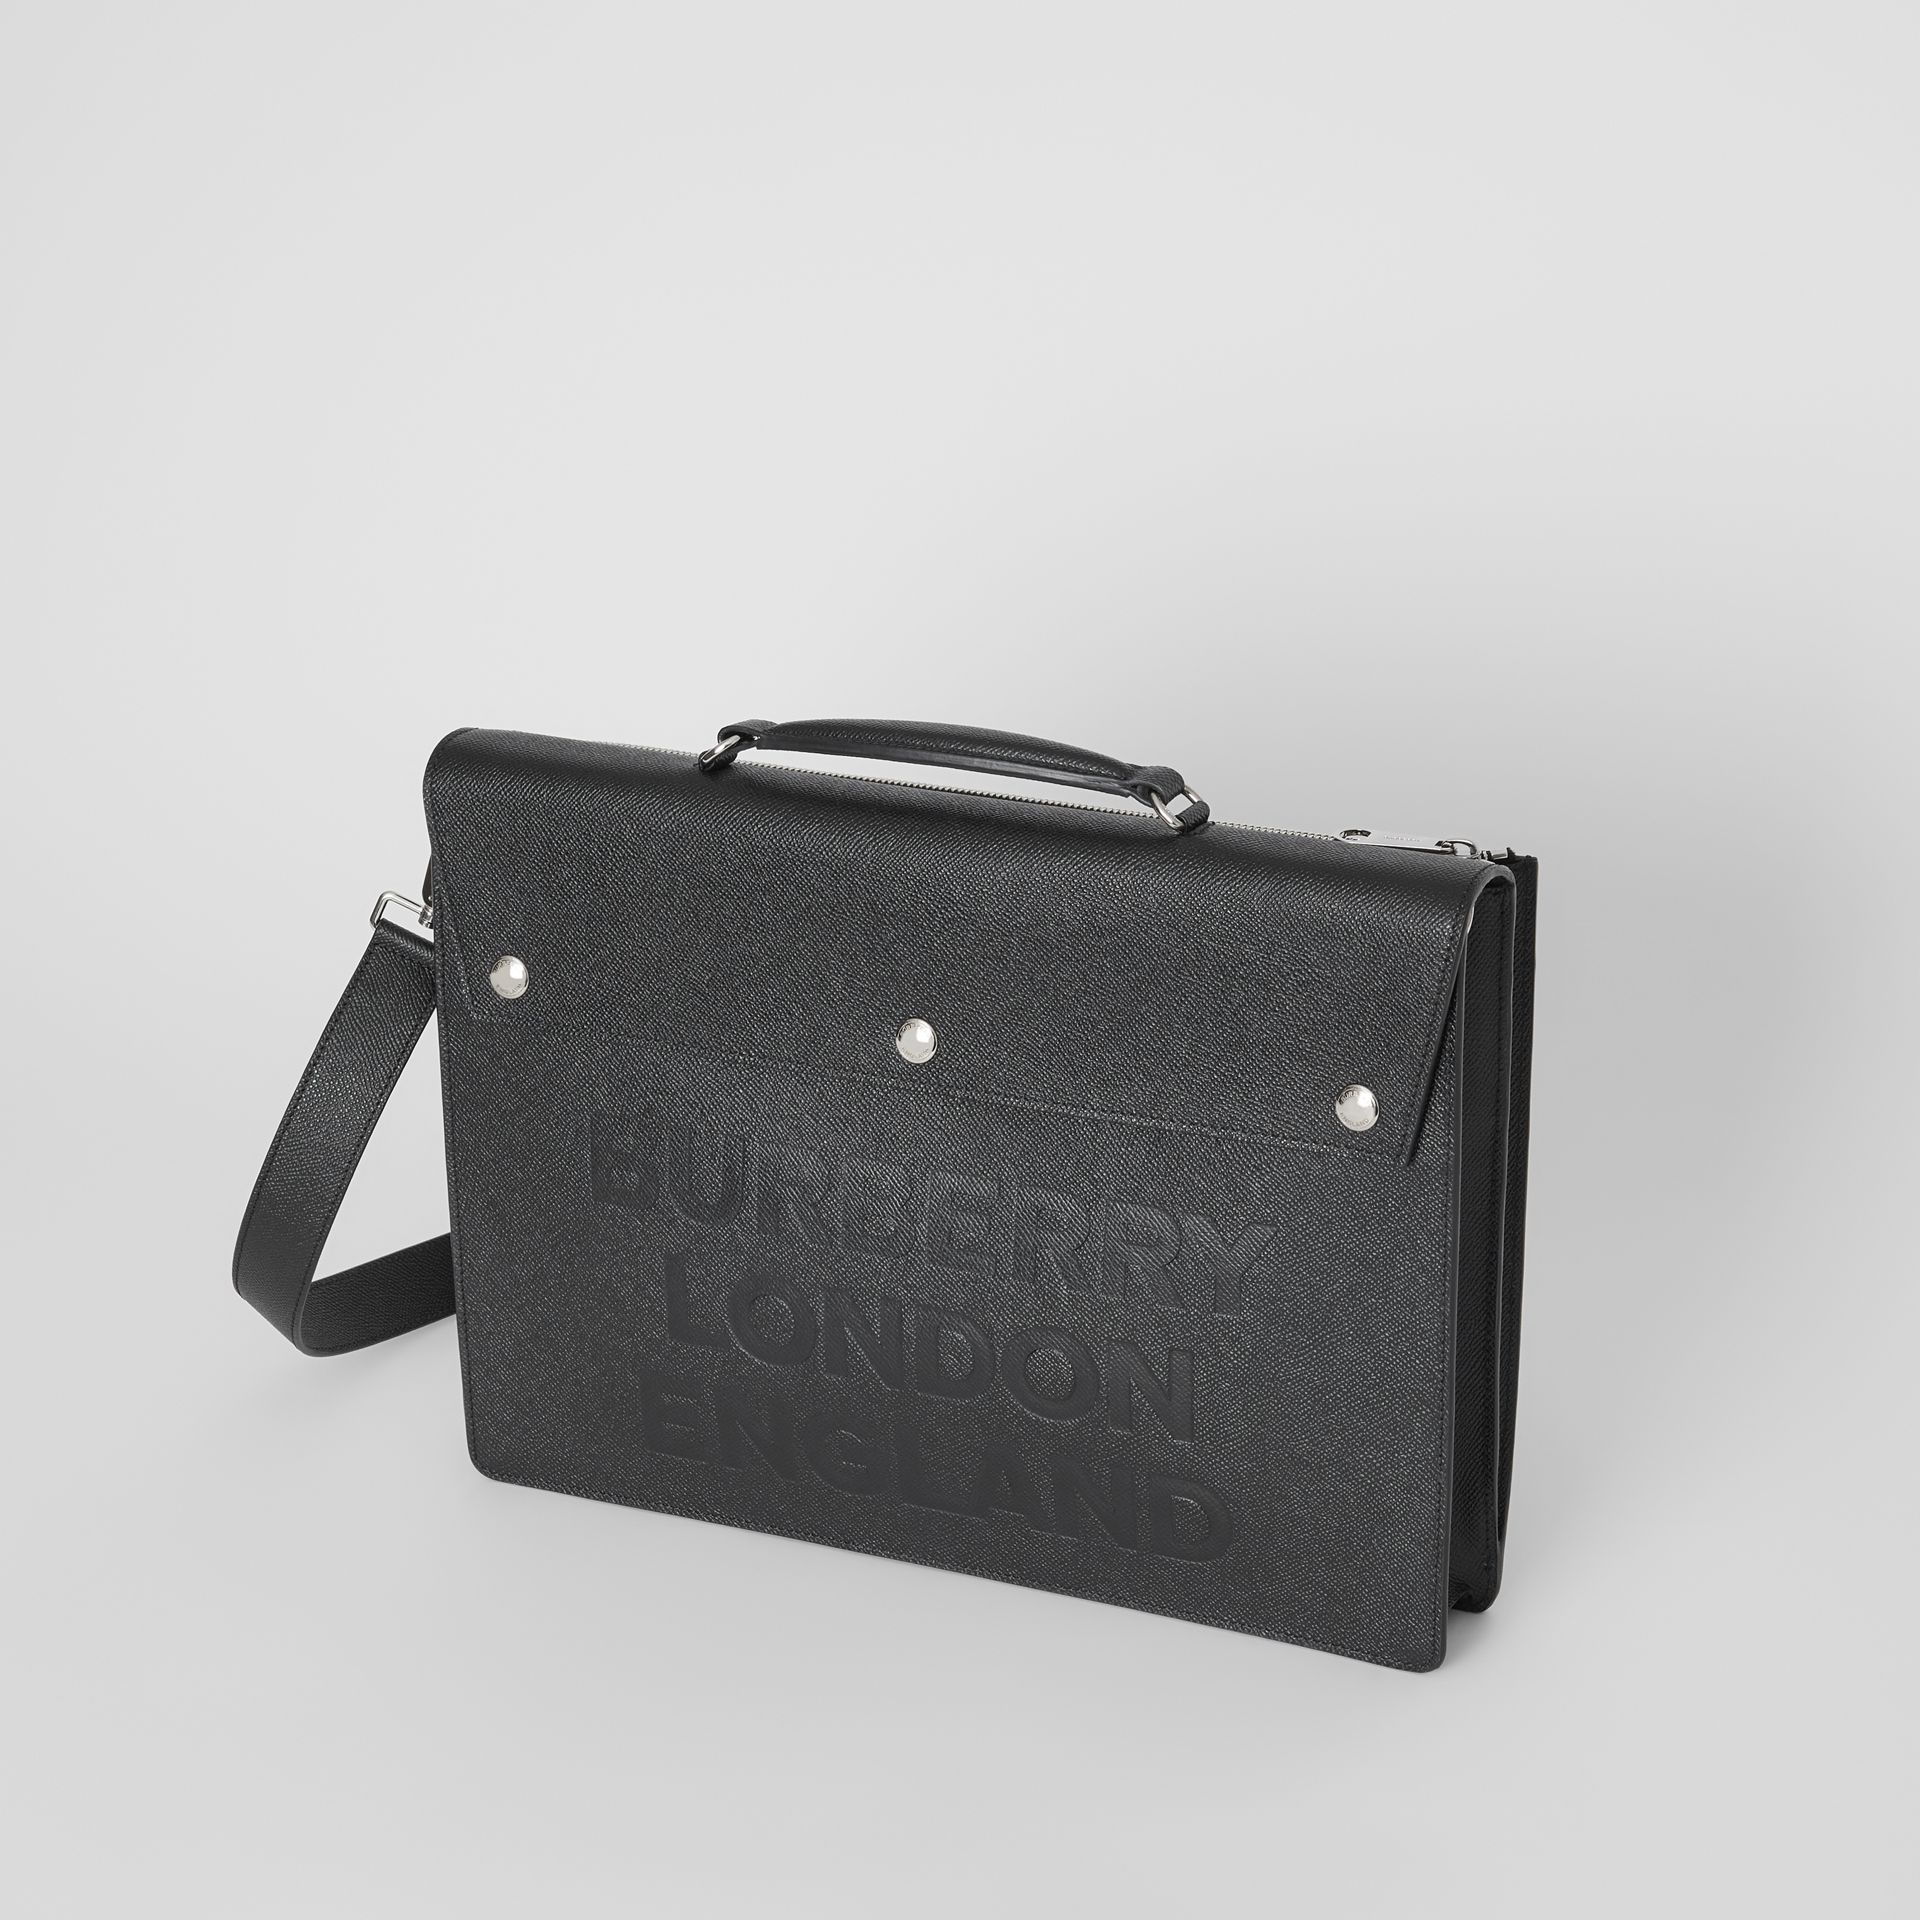 Porte-documents en cuir à triple pression avec logo (Noir) | Burberry Canada - photo de la galerie 3